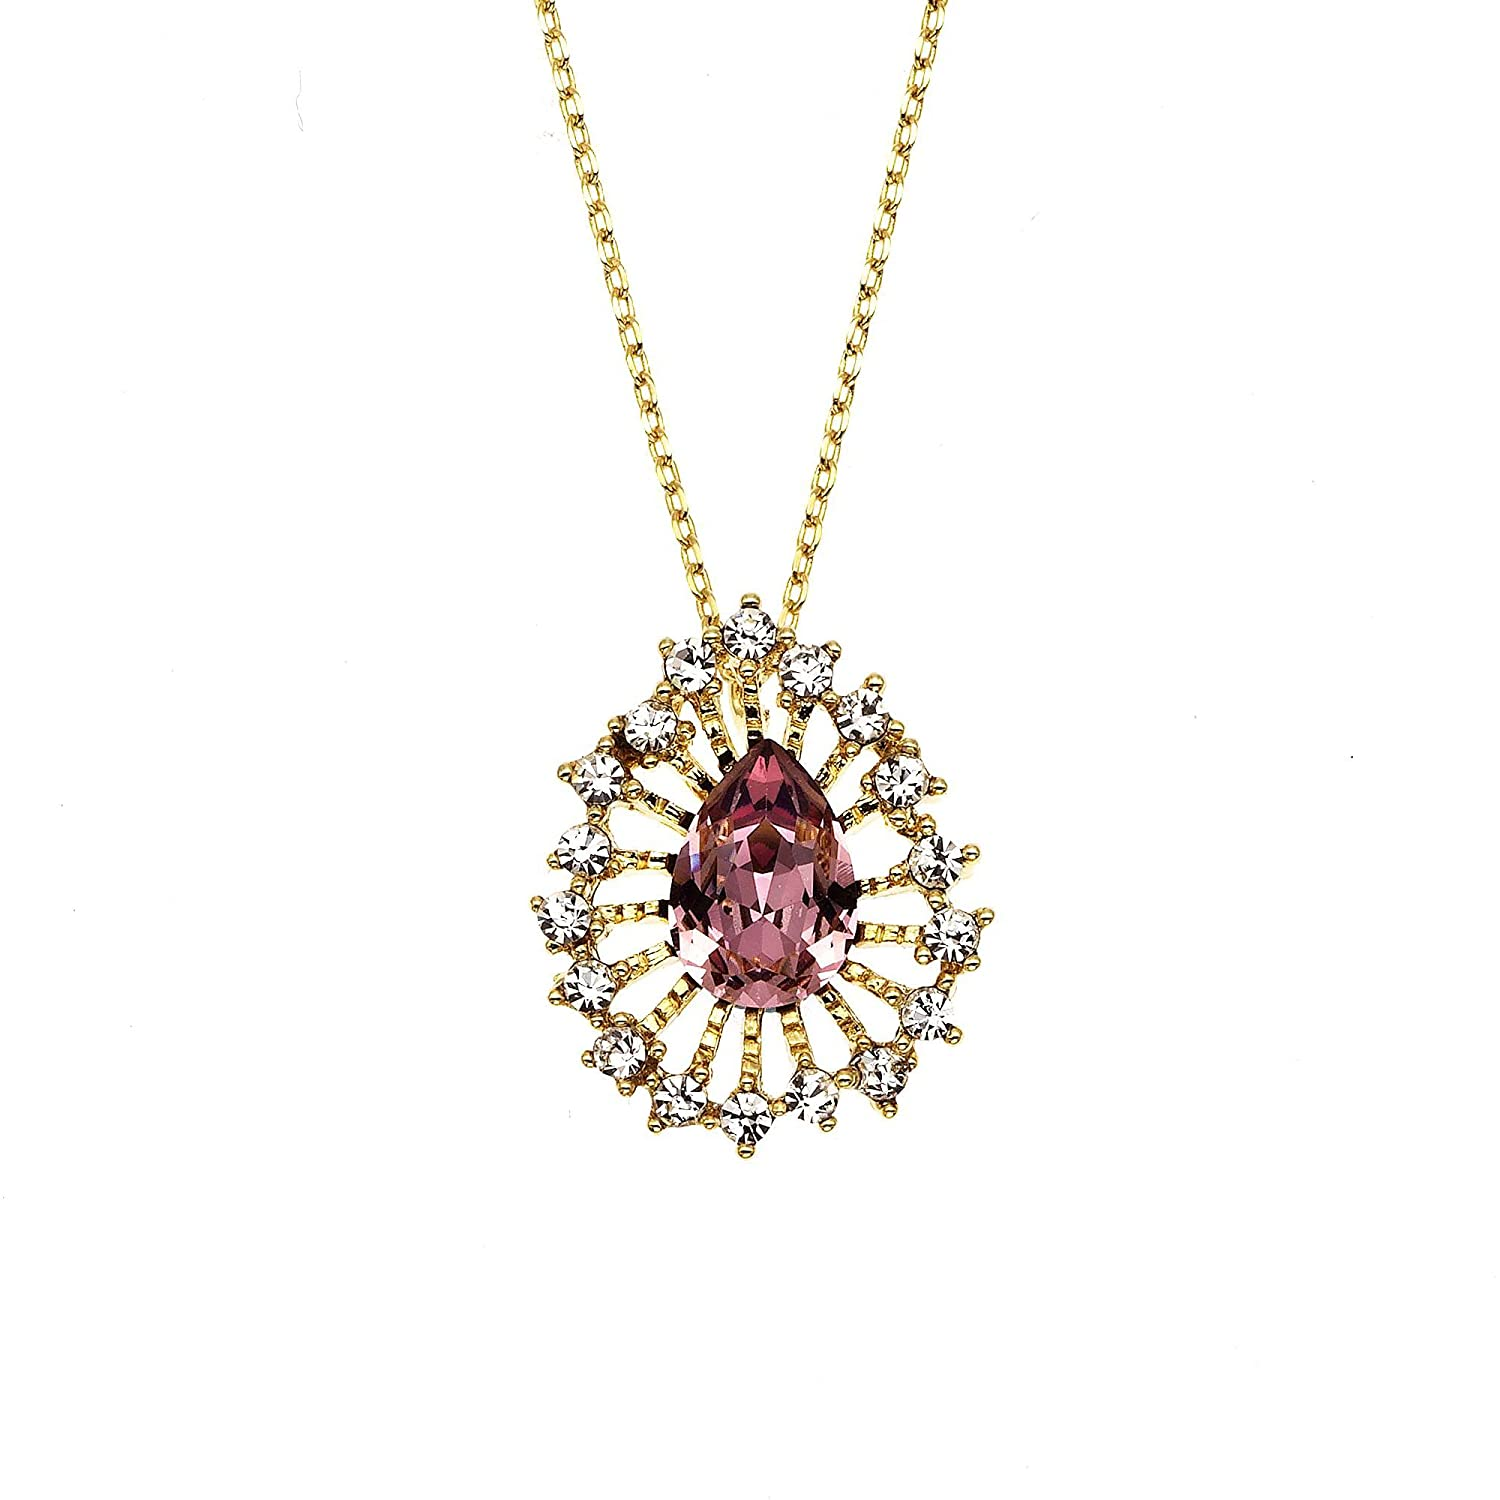 1940s Costume Jewelry: Necklaces, Earrings, Brooch, Bracelets Collection Bijoux 14K Gold Plated Sunburst Necklace with Antique Pink Swarovski Stone $15.99 AT vintagedancer.com